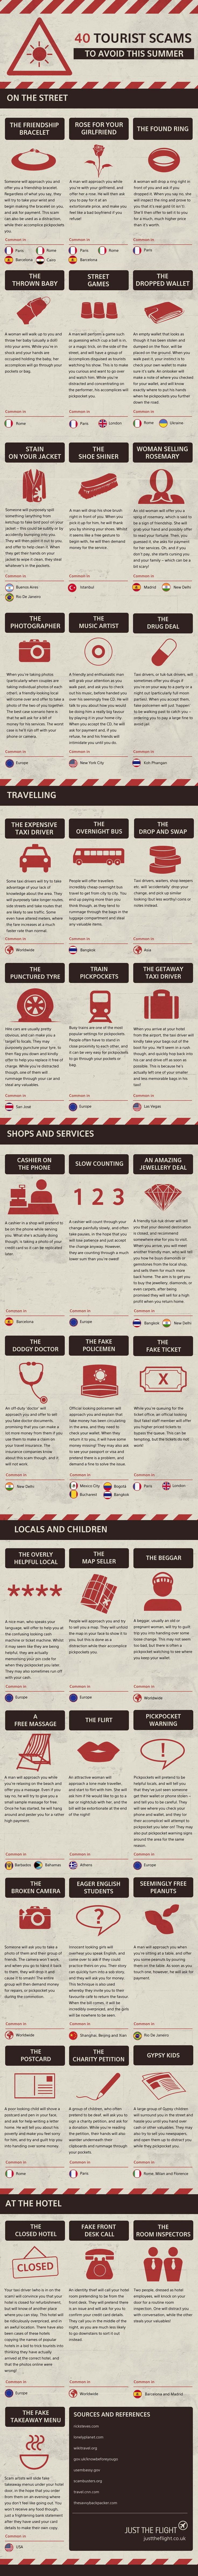 Travel Scams to Watch for